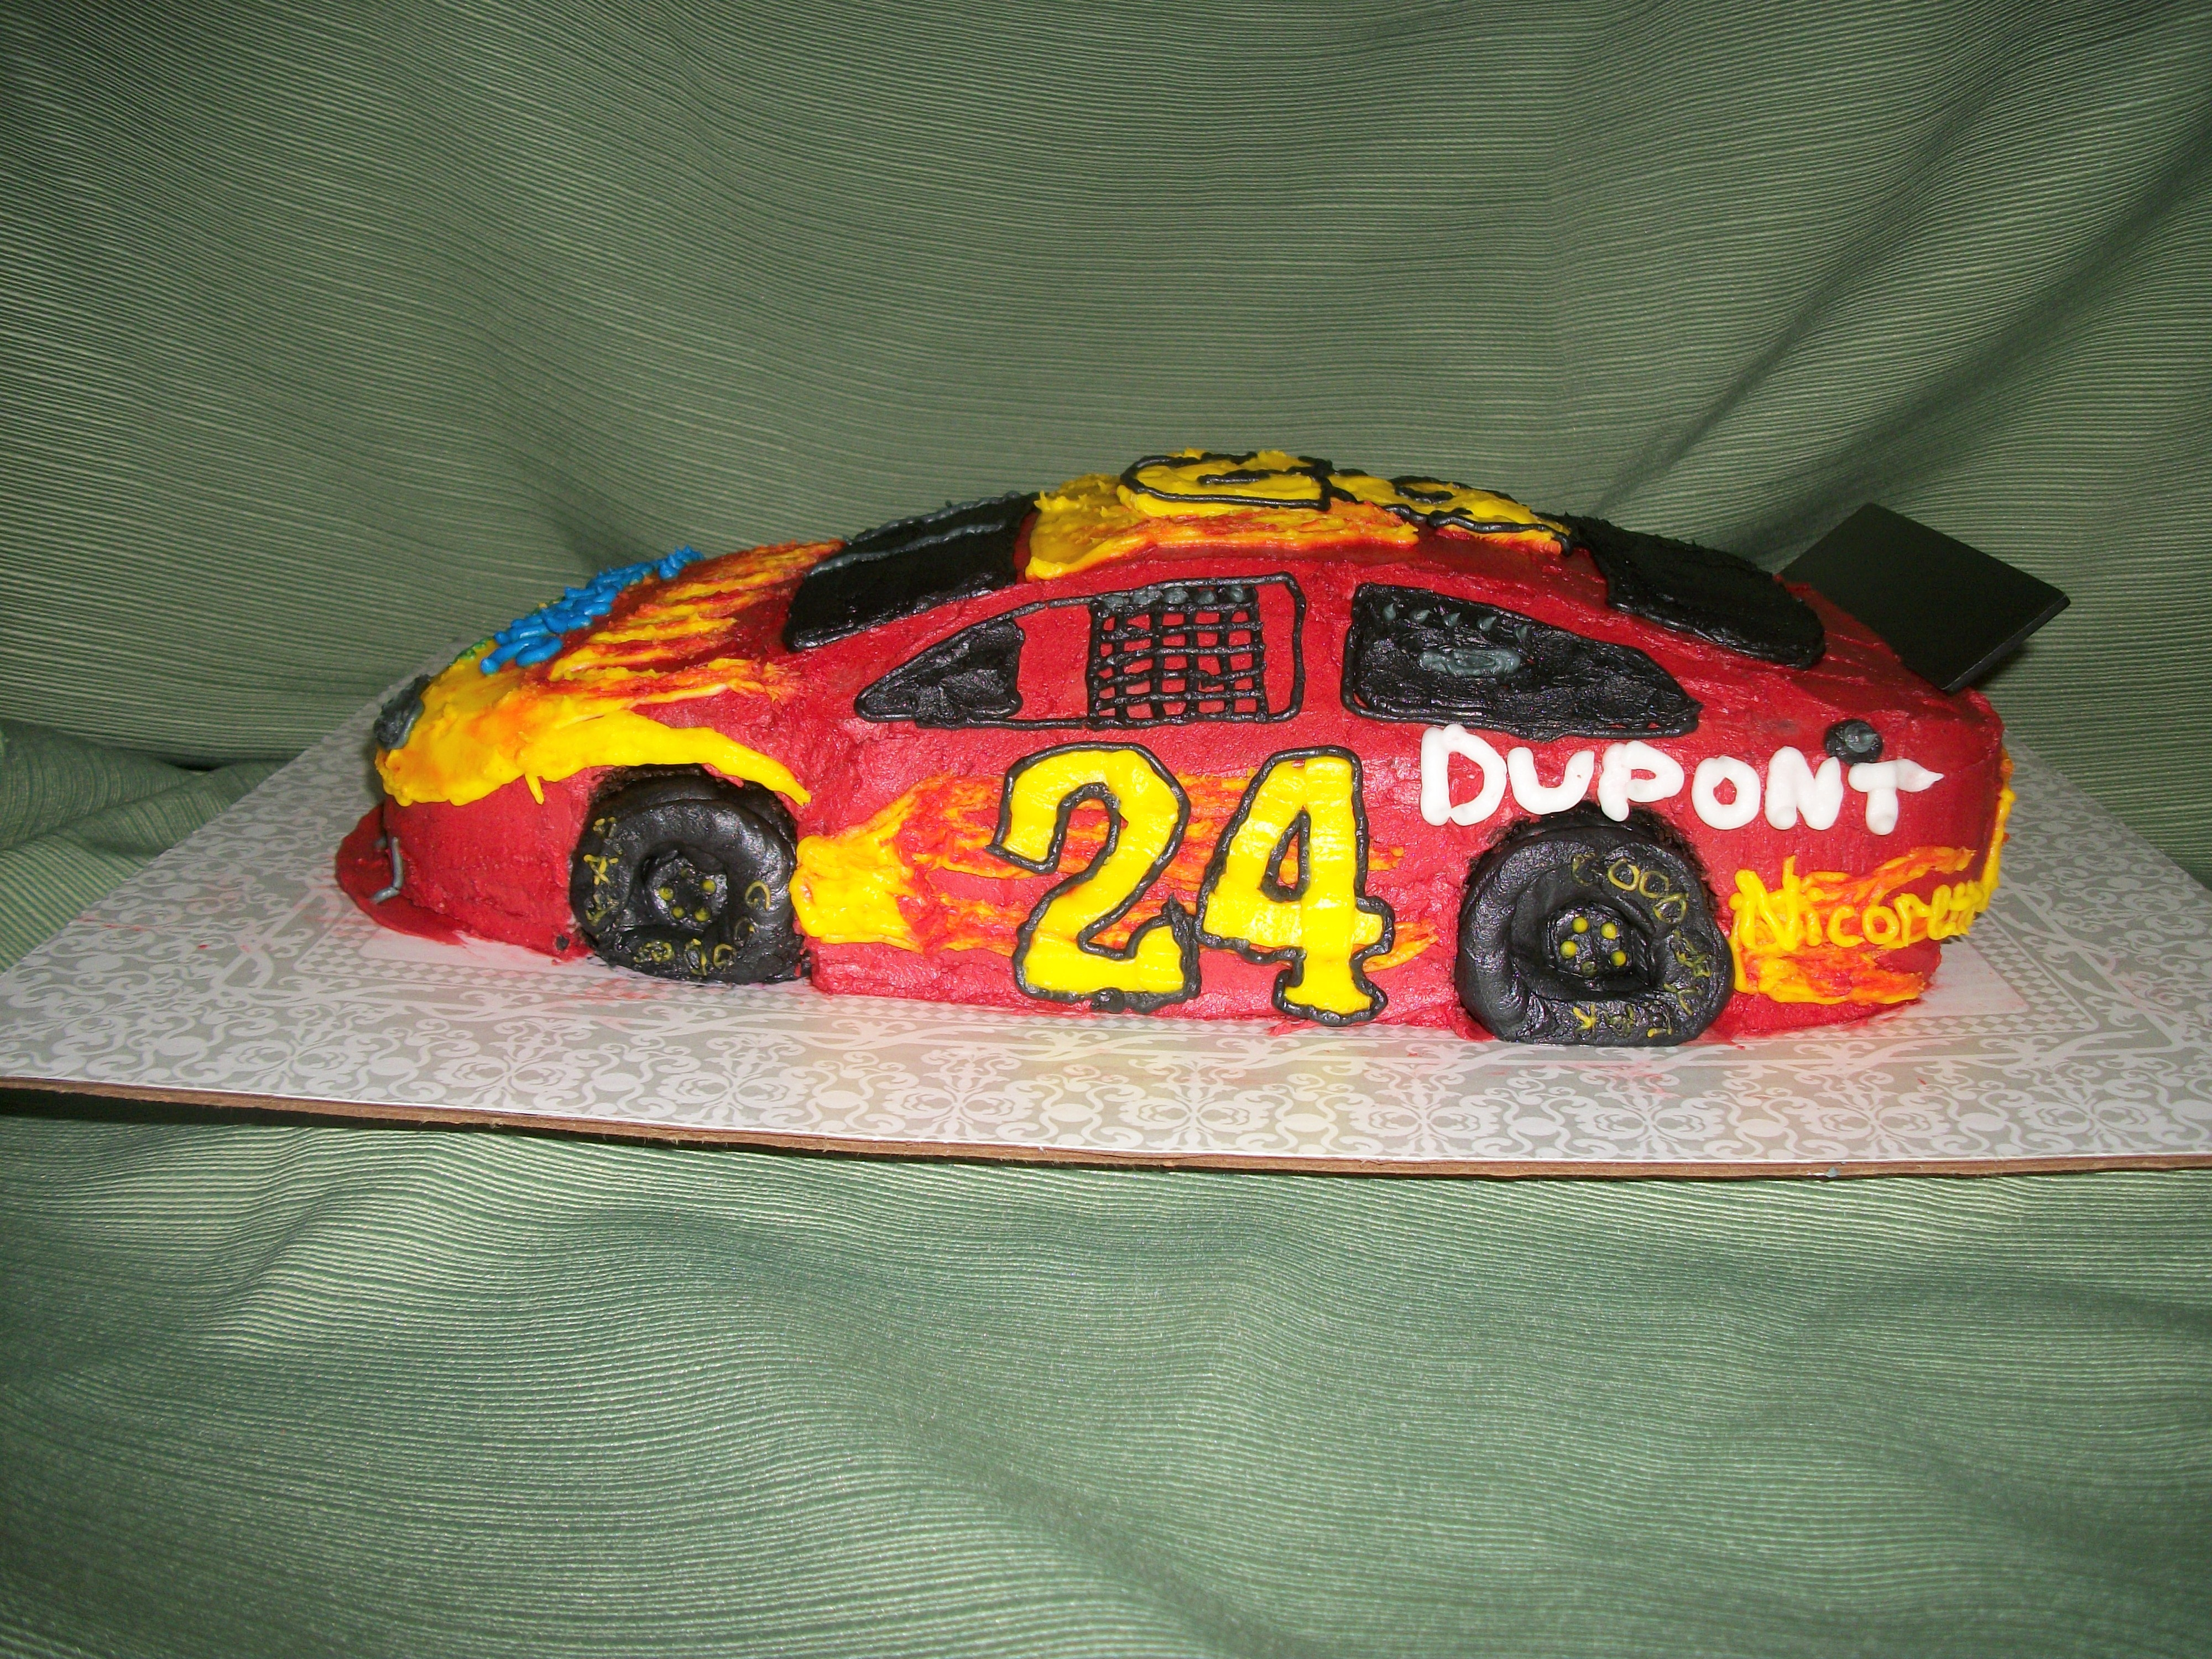 This is a sculpted Jeff Gordon Specialty Car decorated in buttercream.